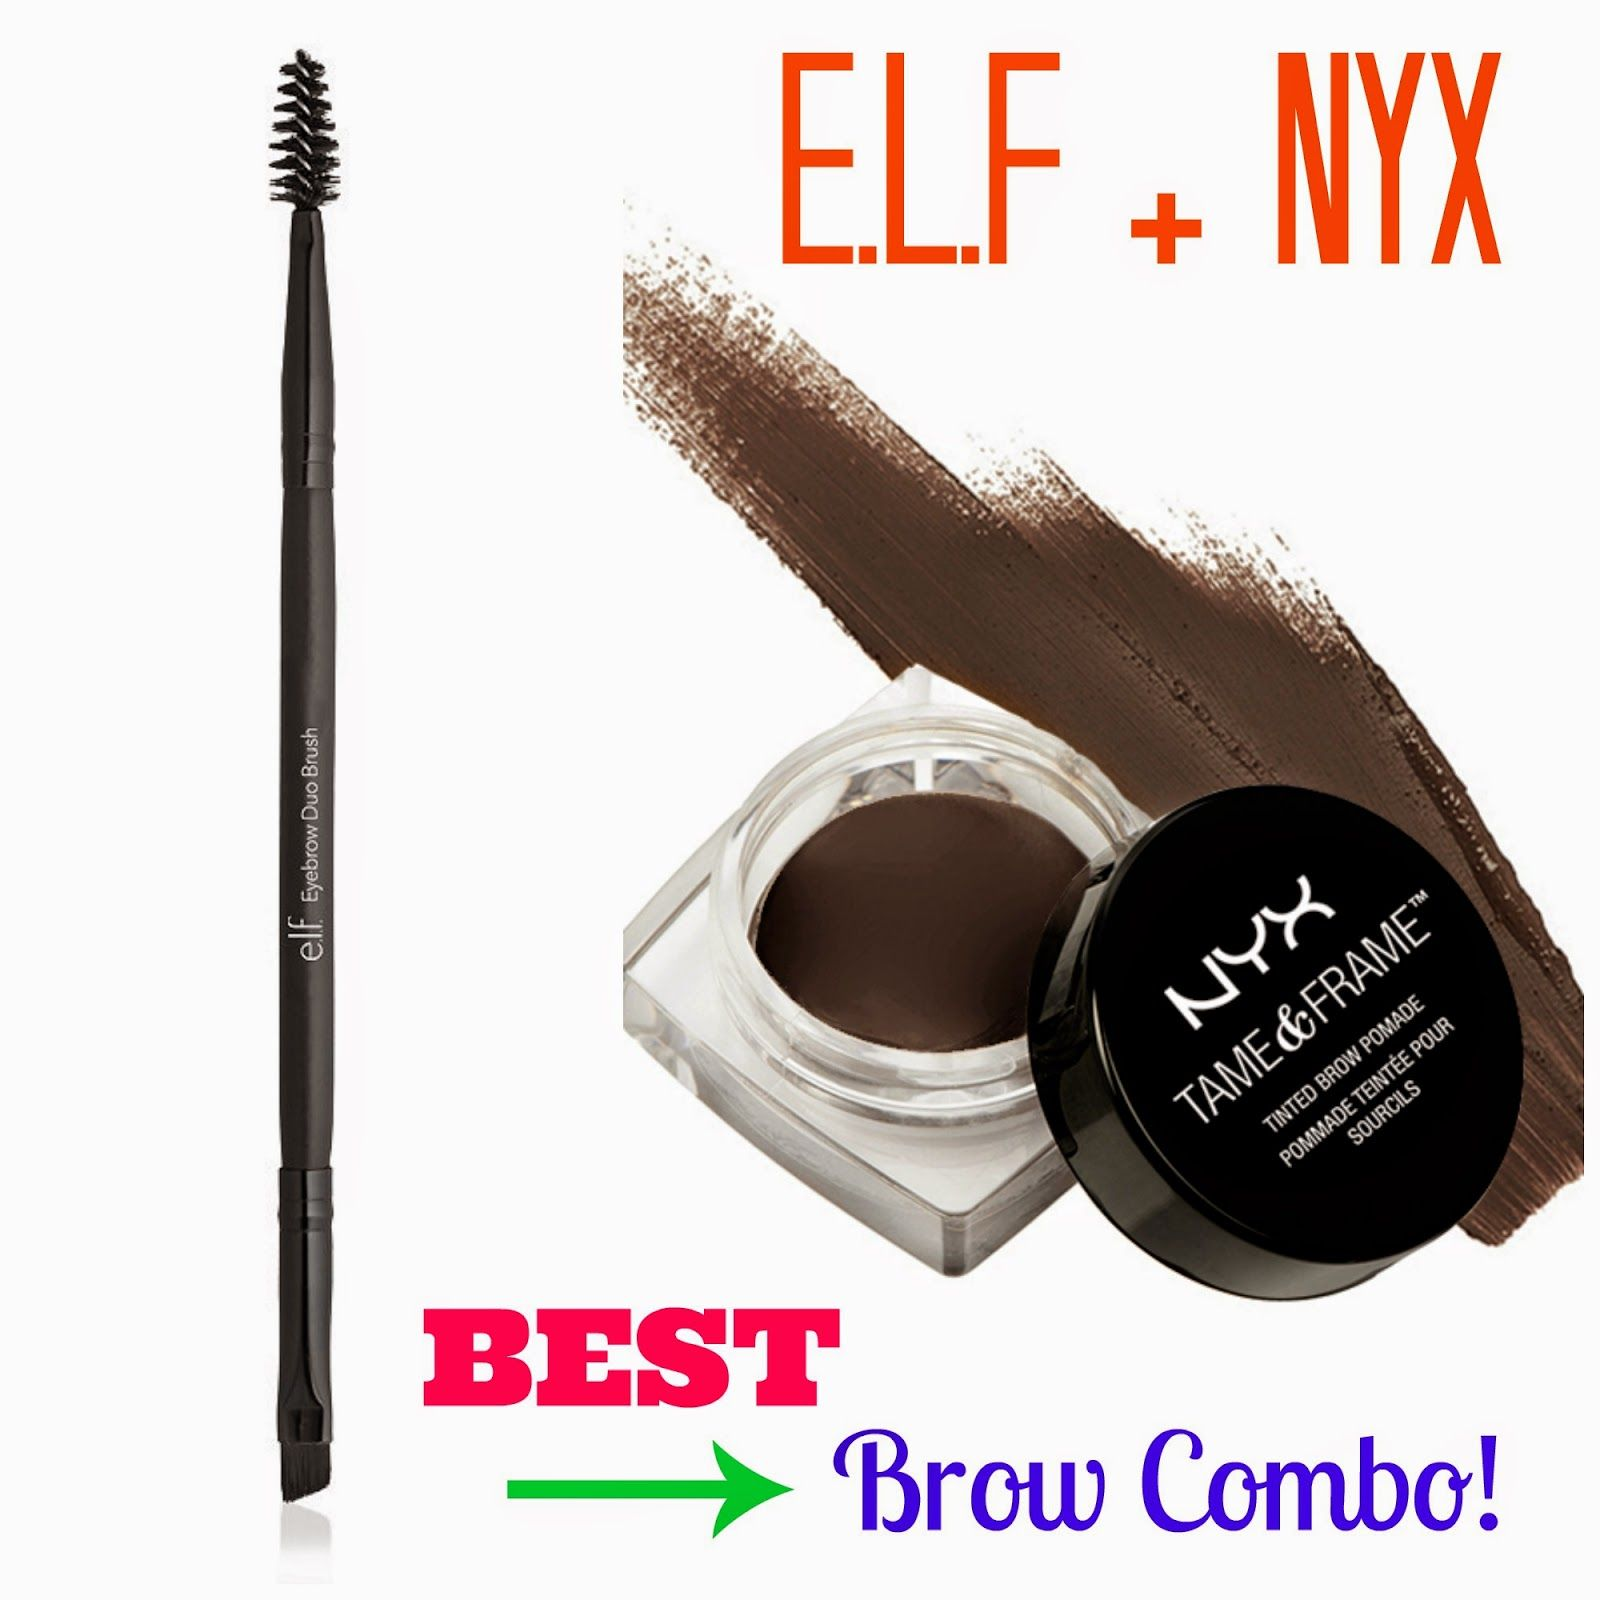 Best Drugstore Brow Pomade Brush Combo Brows Pinterest Brows